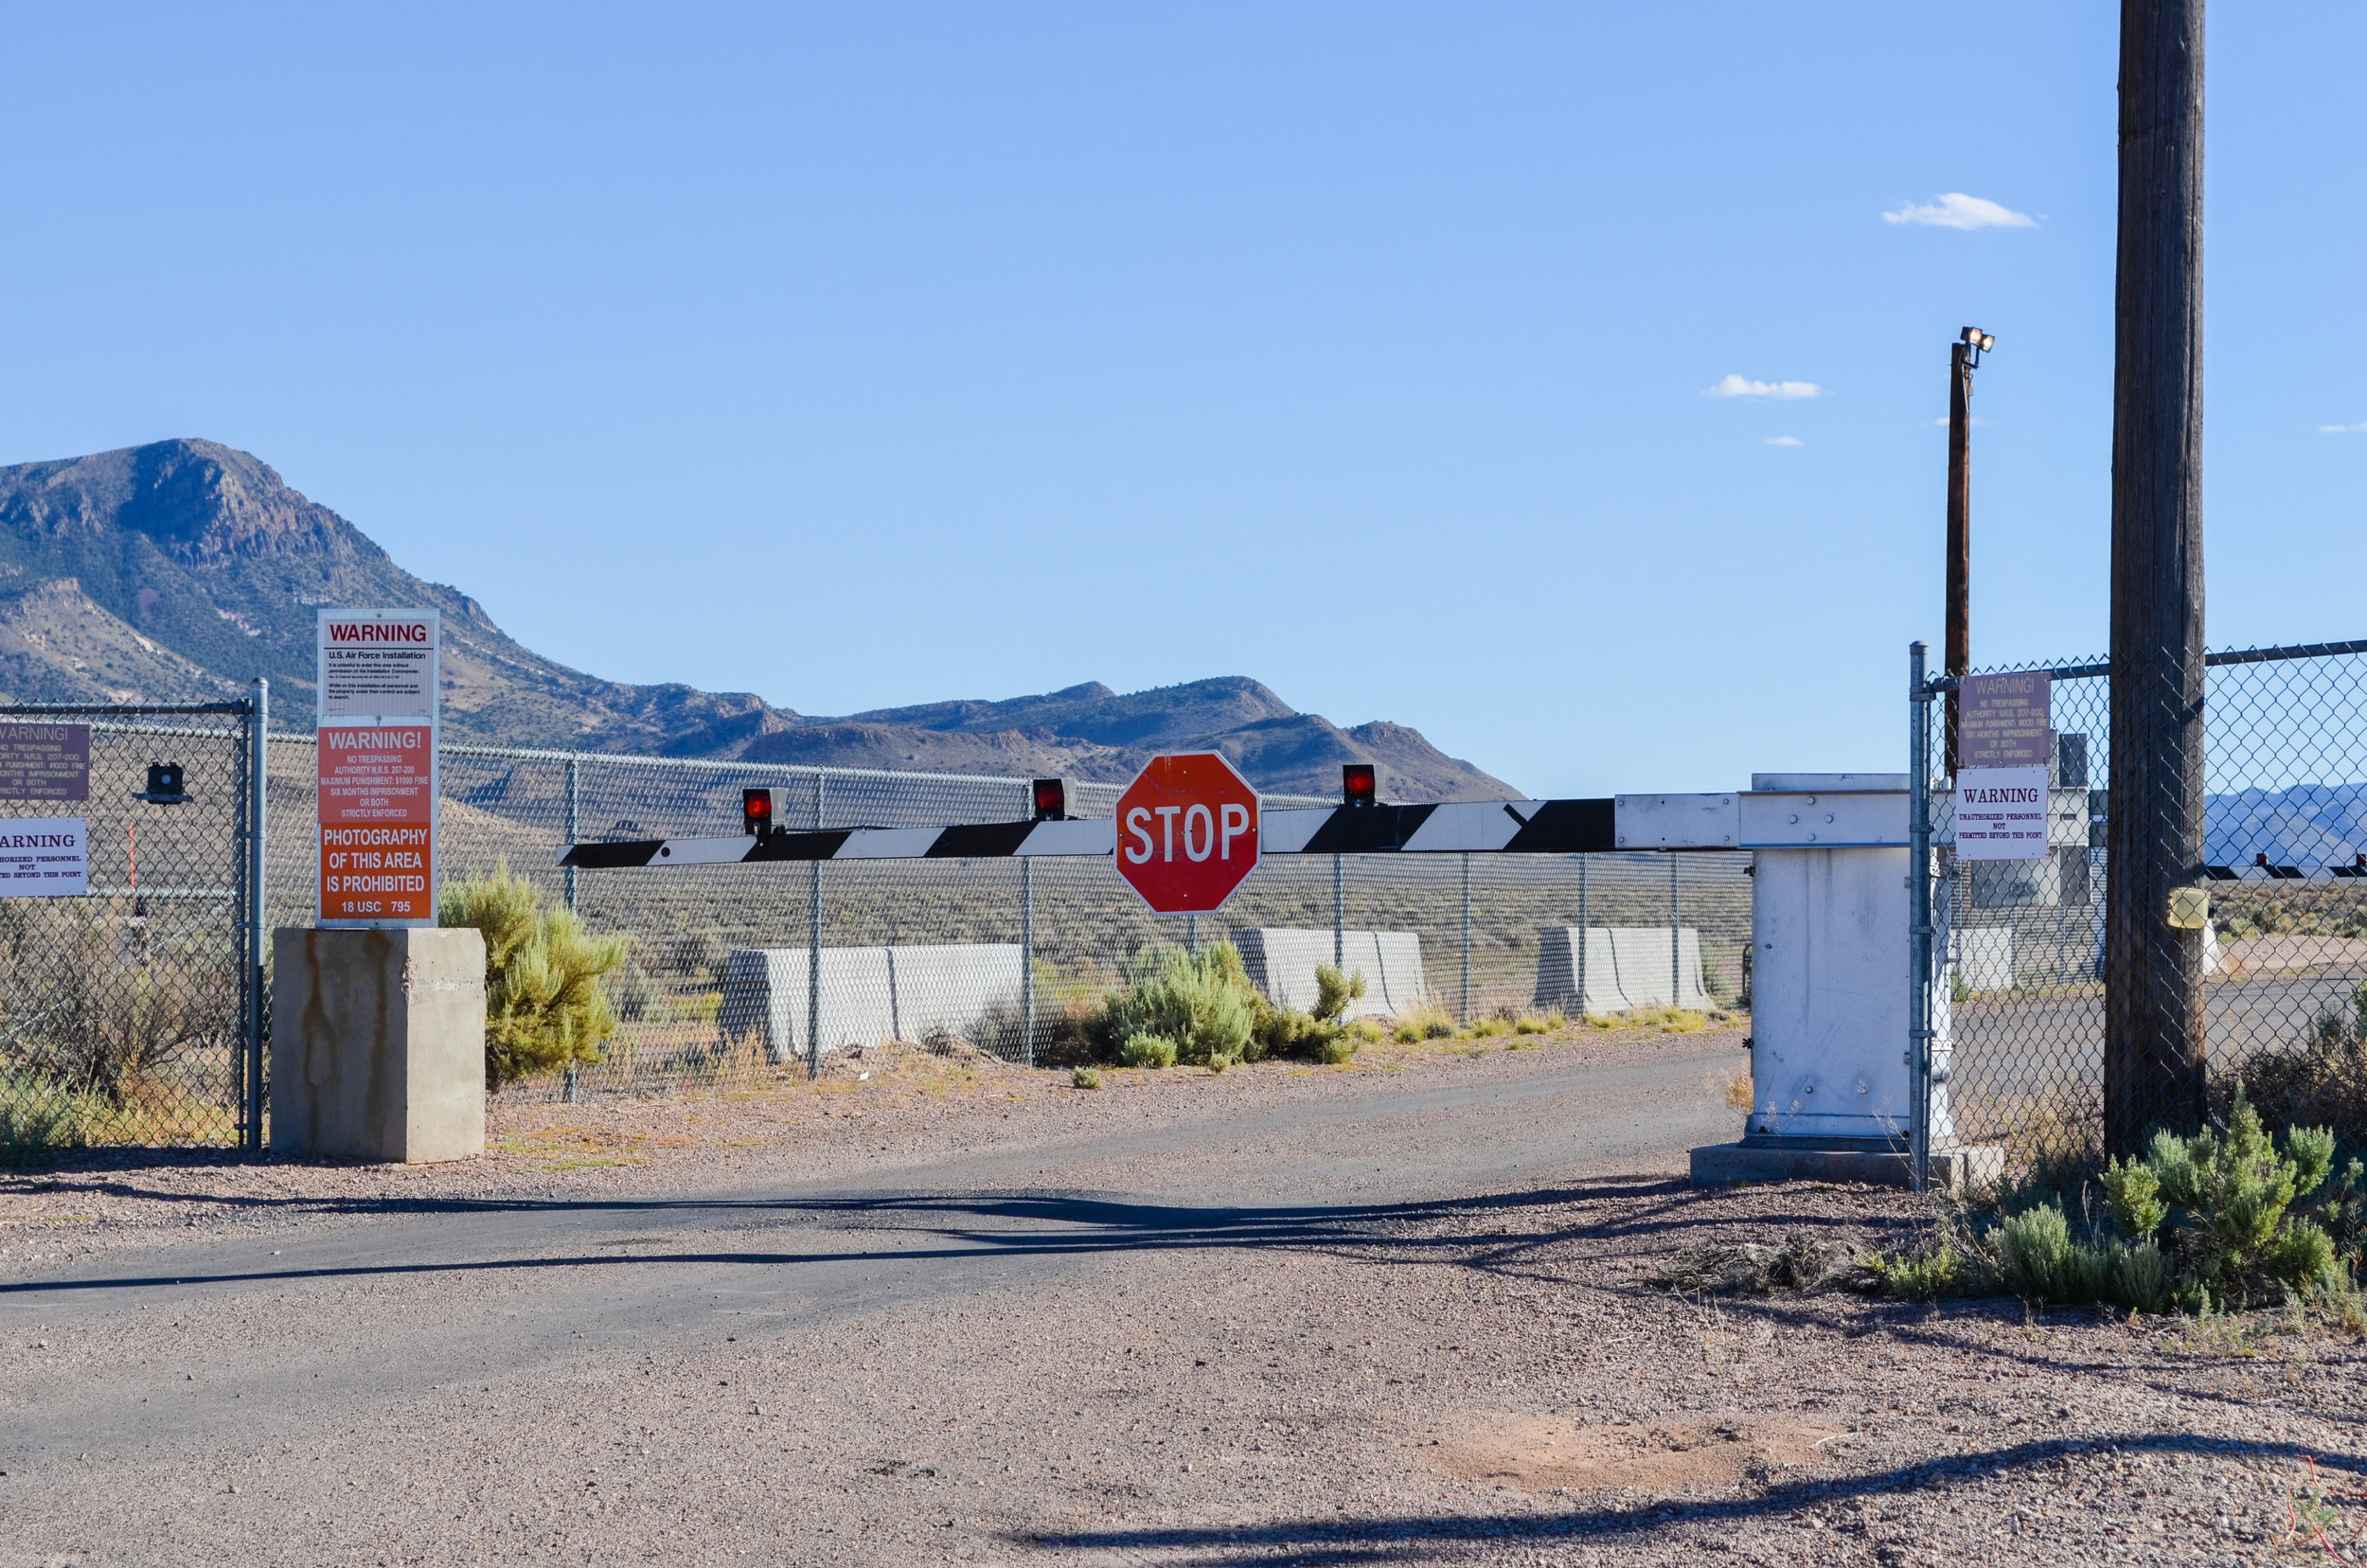 The back entrance to Area 51, Nevada